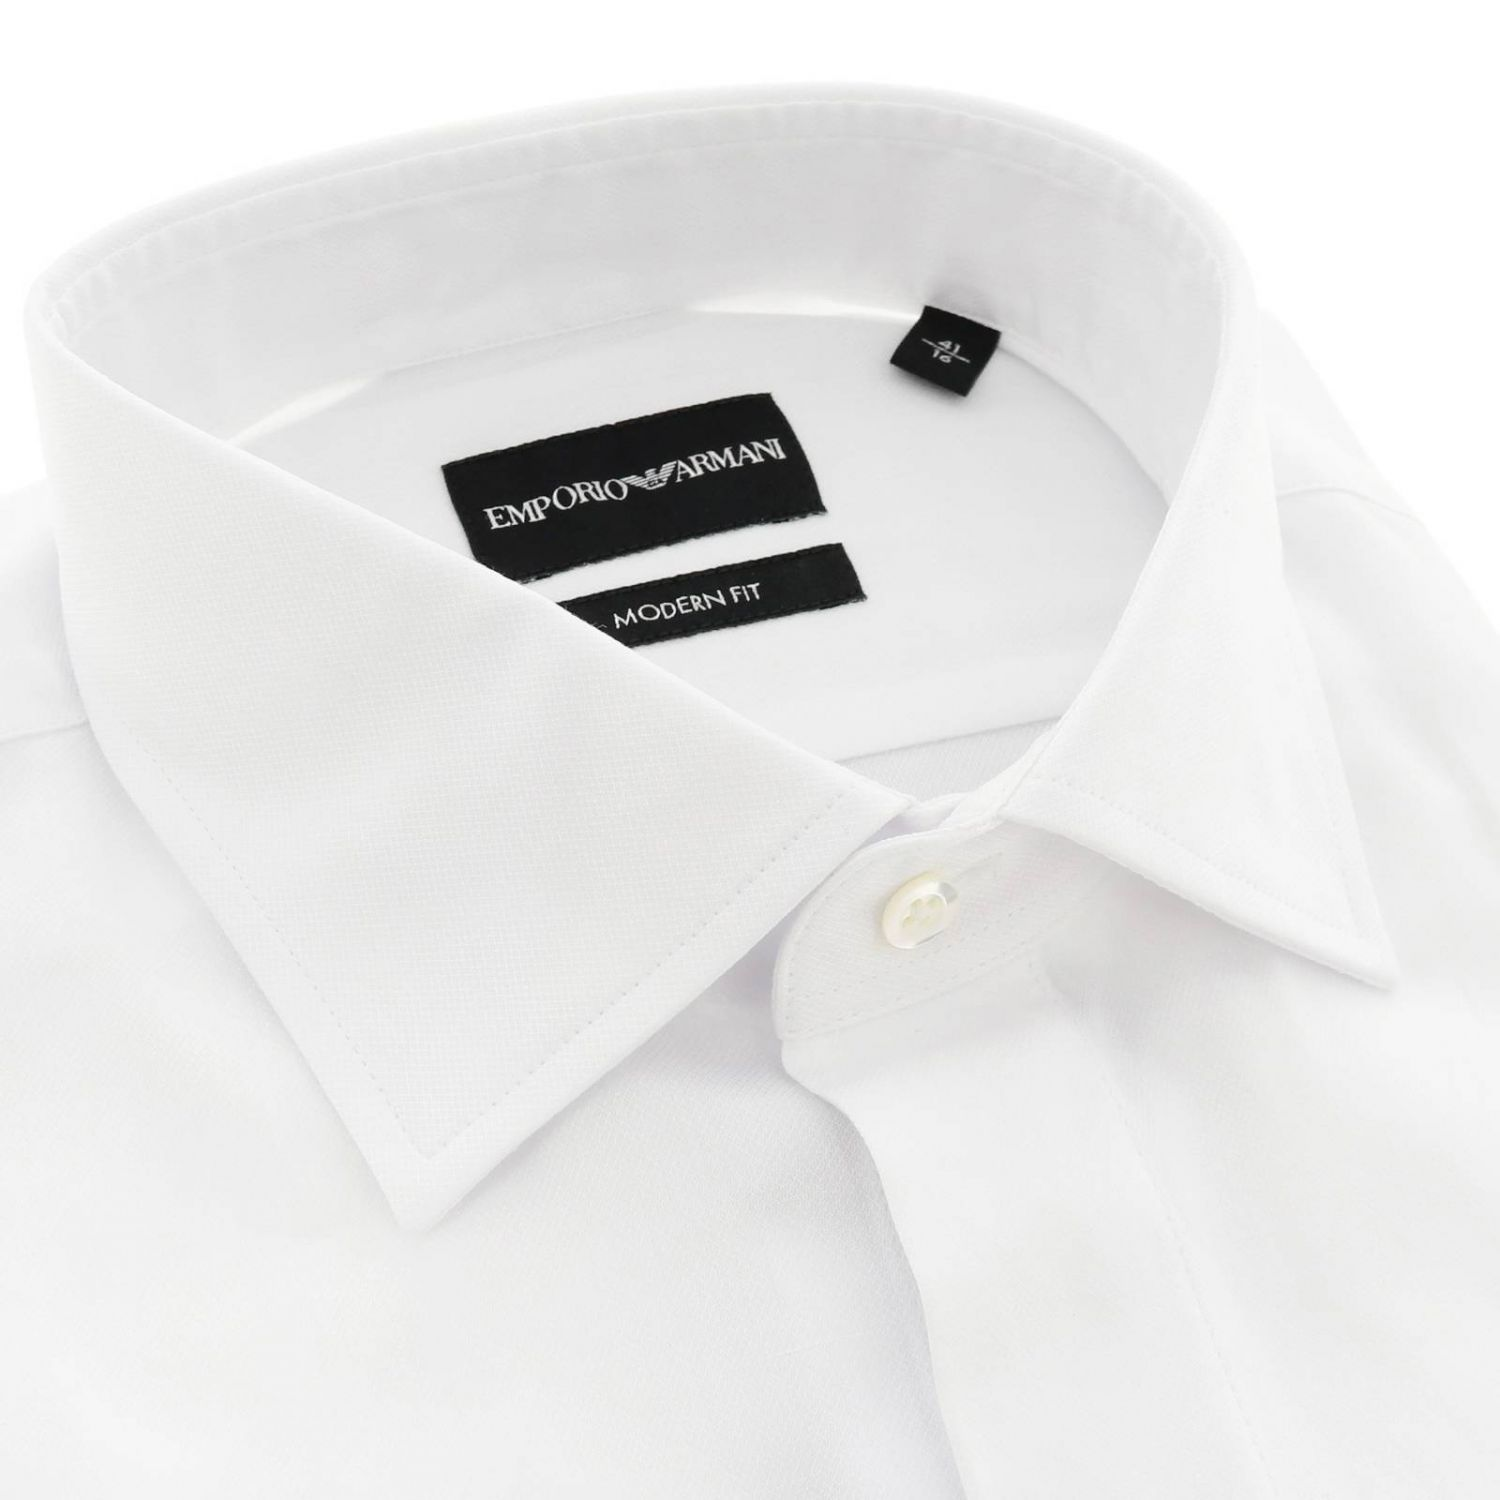 Shirt men Emporio Armani white 2